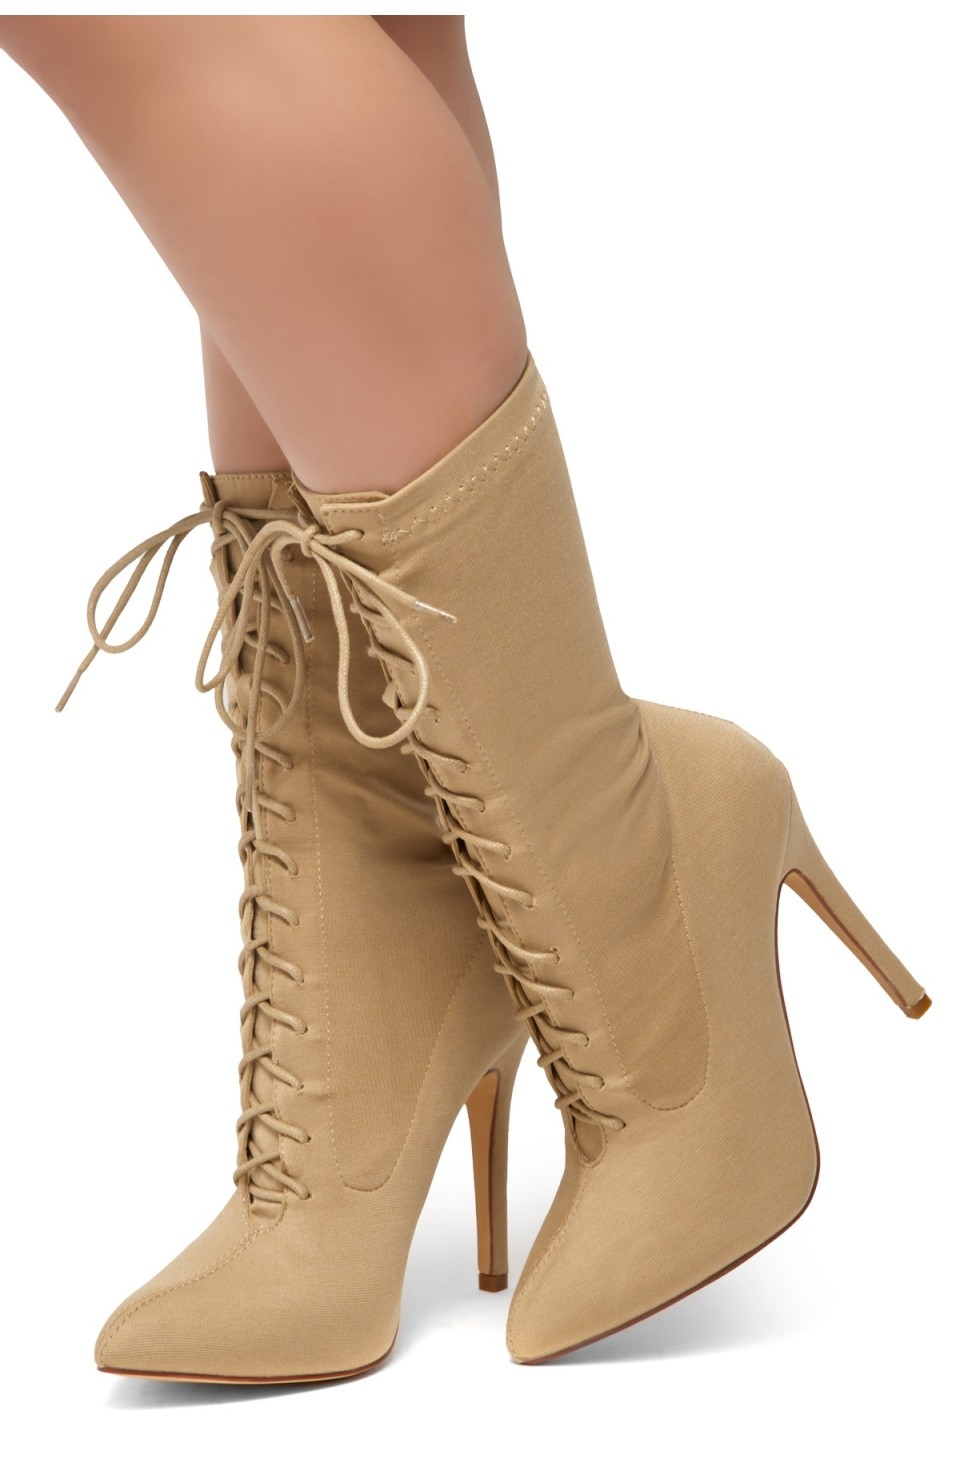 HerStyle Neely-Almond toe, stiletto heel, sock booties (Camel)